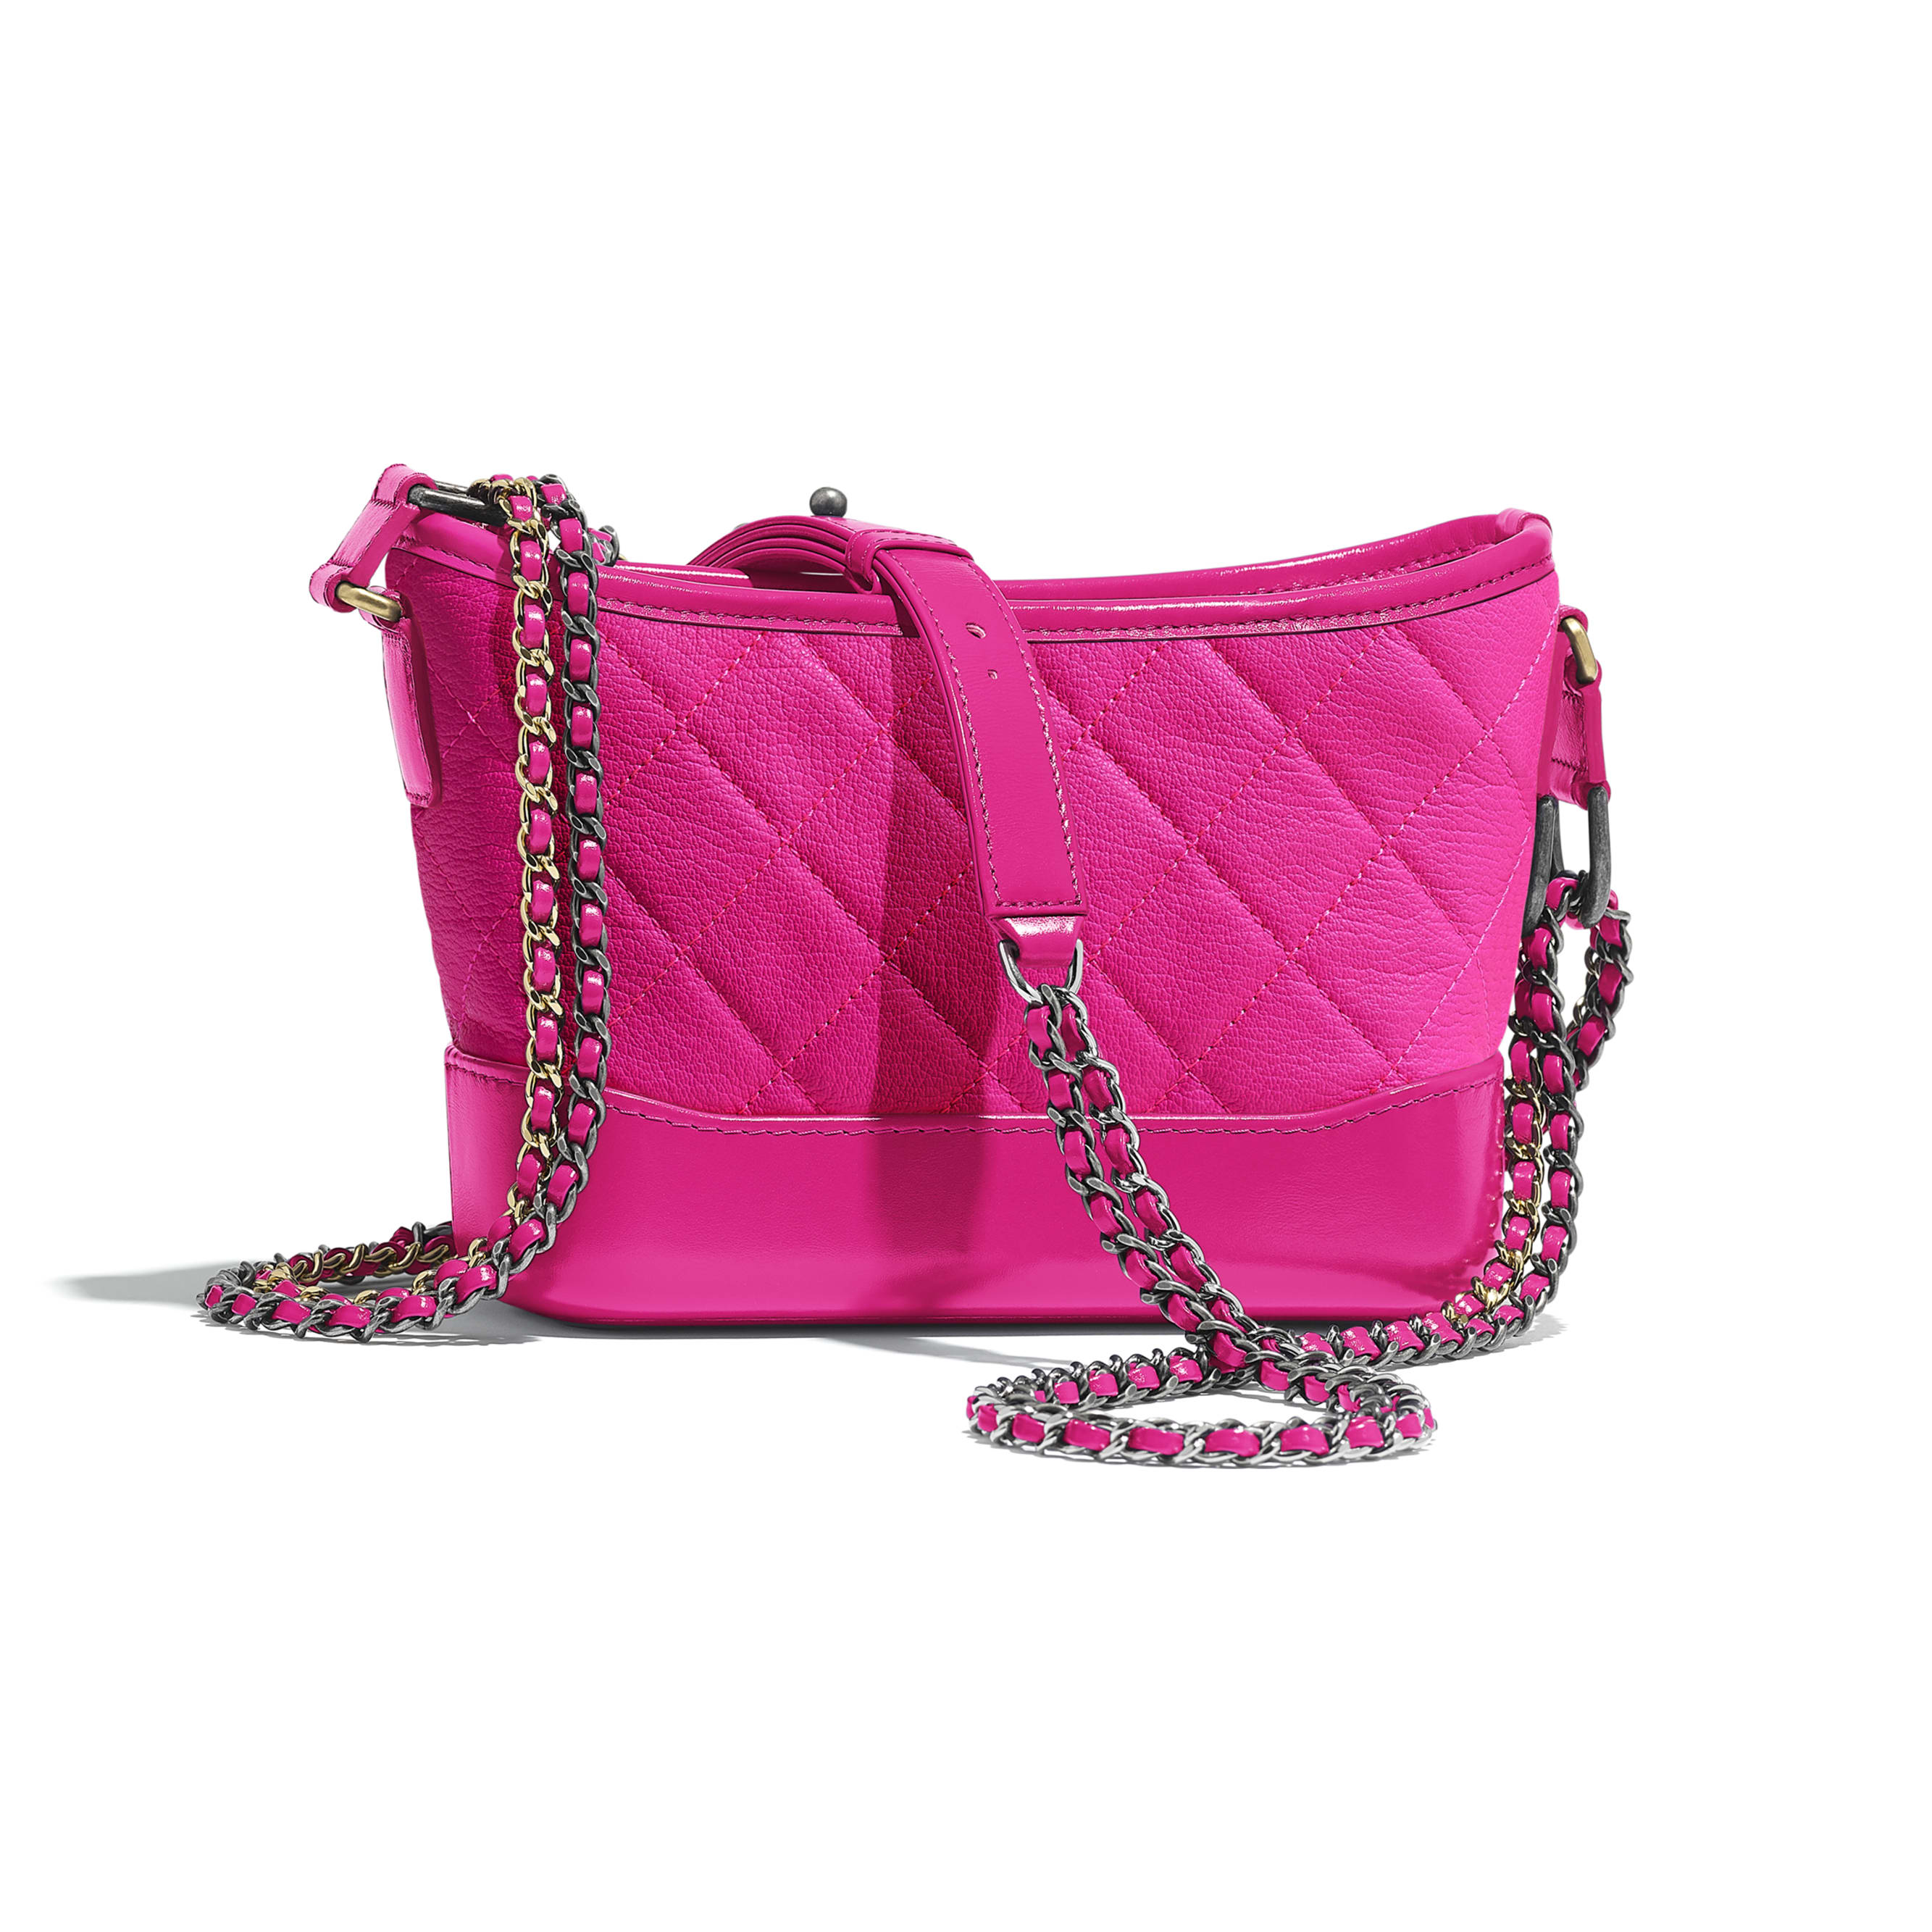 CHANEL'S GABRIELLE Small Hobo Bag - Pink - Goatskin, Gold-Tone & Silver-Tone Metal - Alternative view - see standard sized version